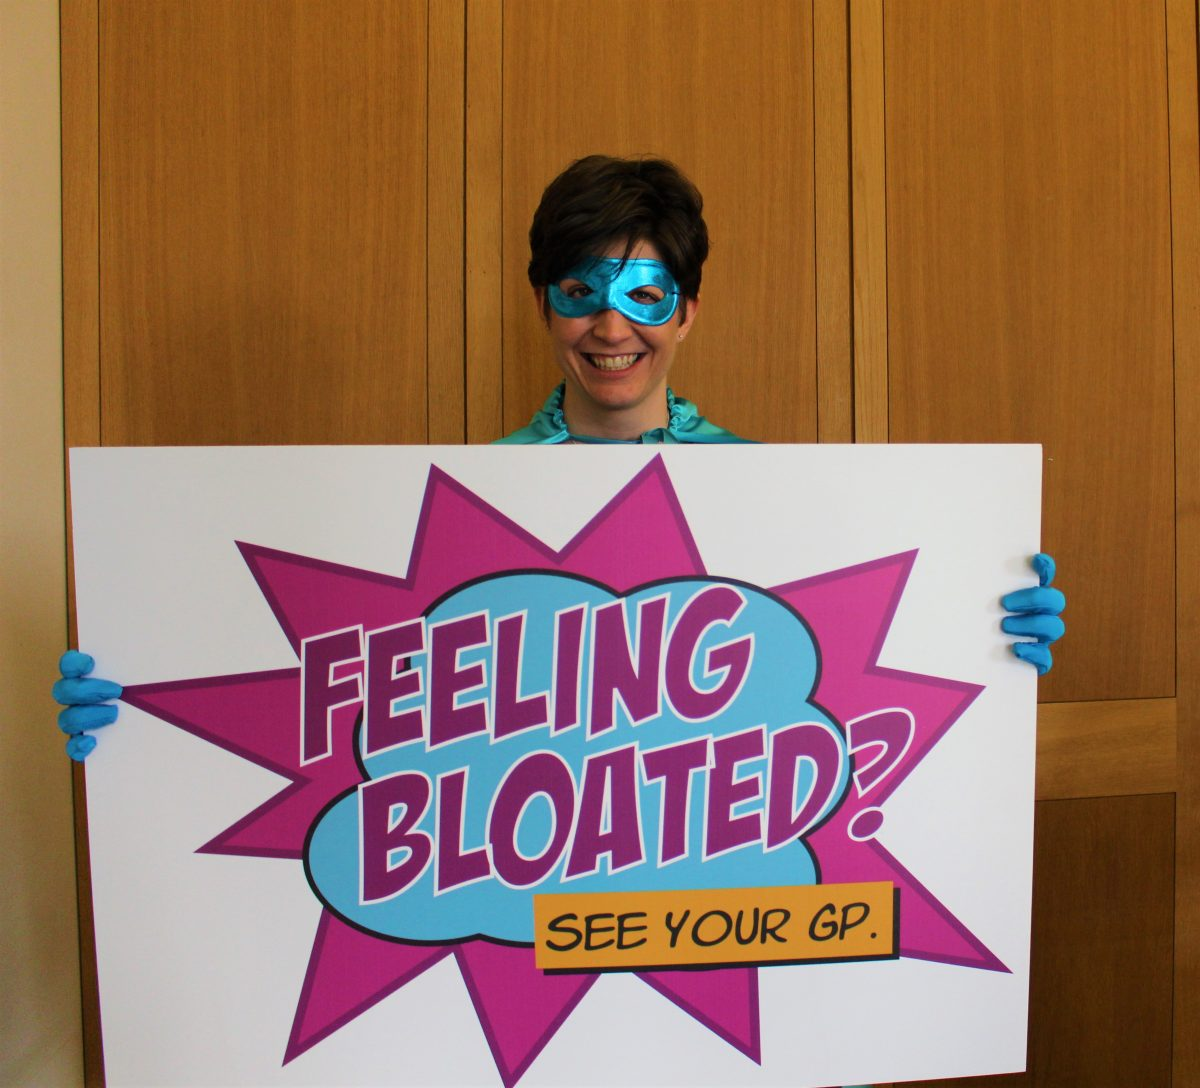 Alison Thewliss MP becomes teal hero for Ovarian Cancer Awareness Month